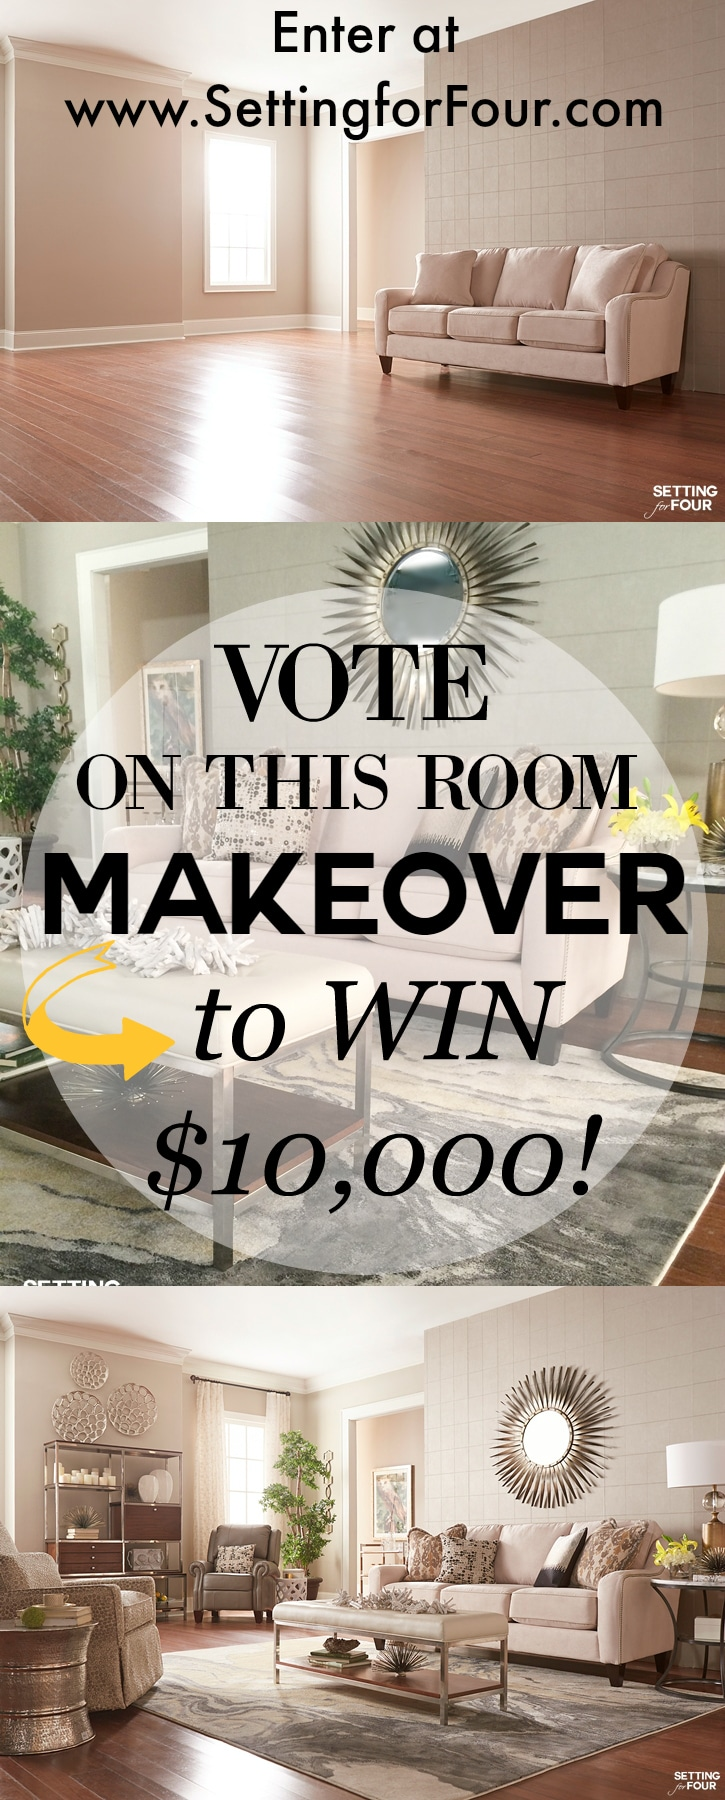 Ready to get a beautiful room? Vote on this Room Makeover for a chance to win $10,000 La-Z-Boy furniture! WOW! www.settingforfour.com